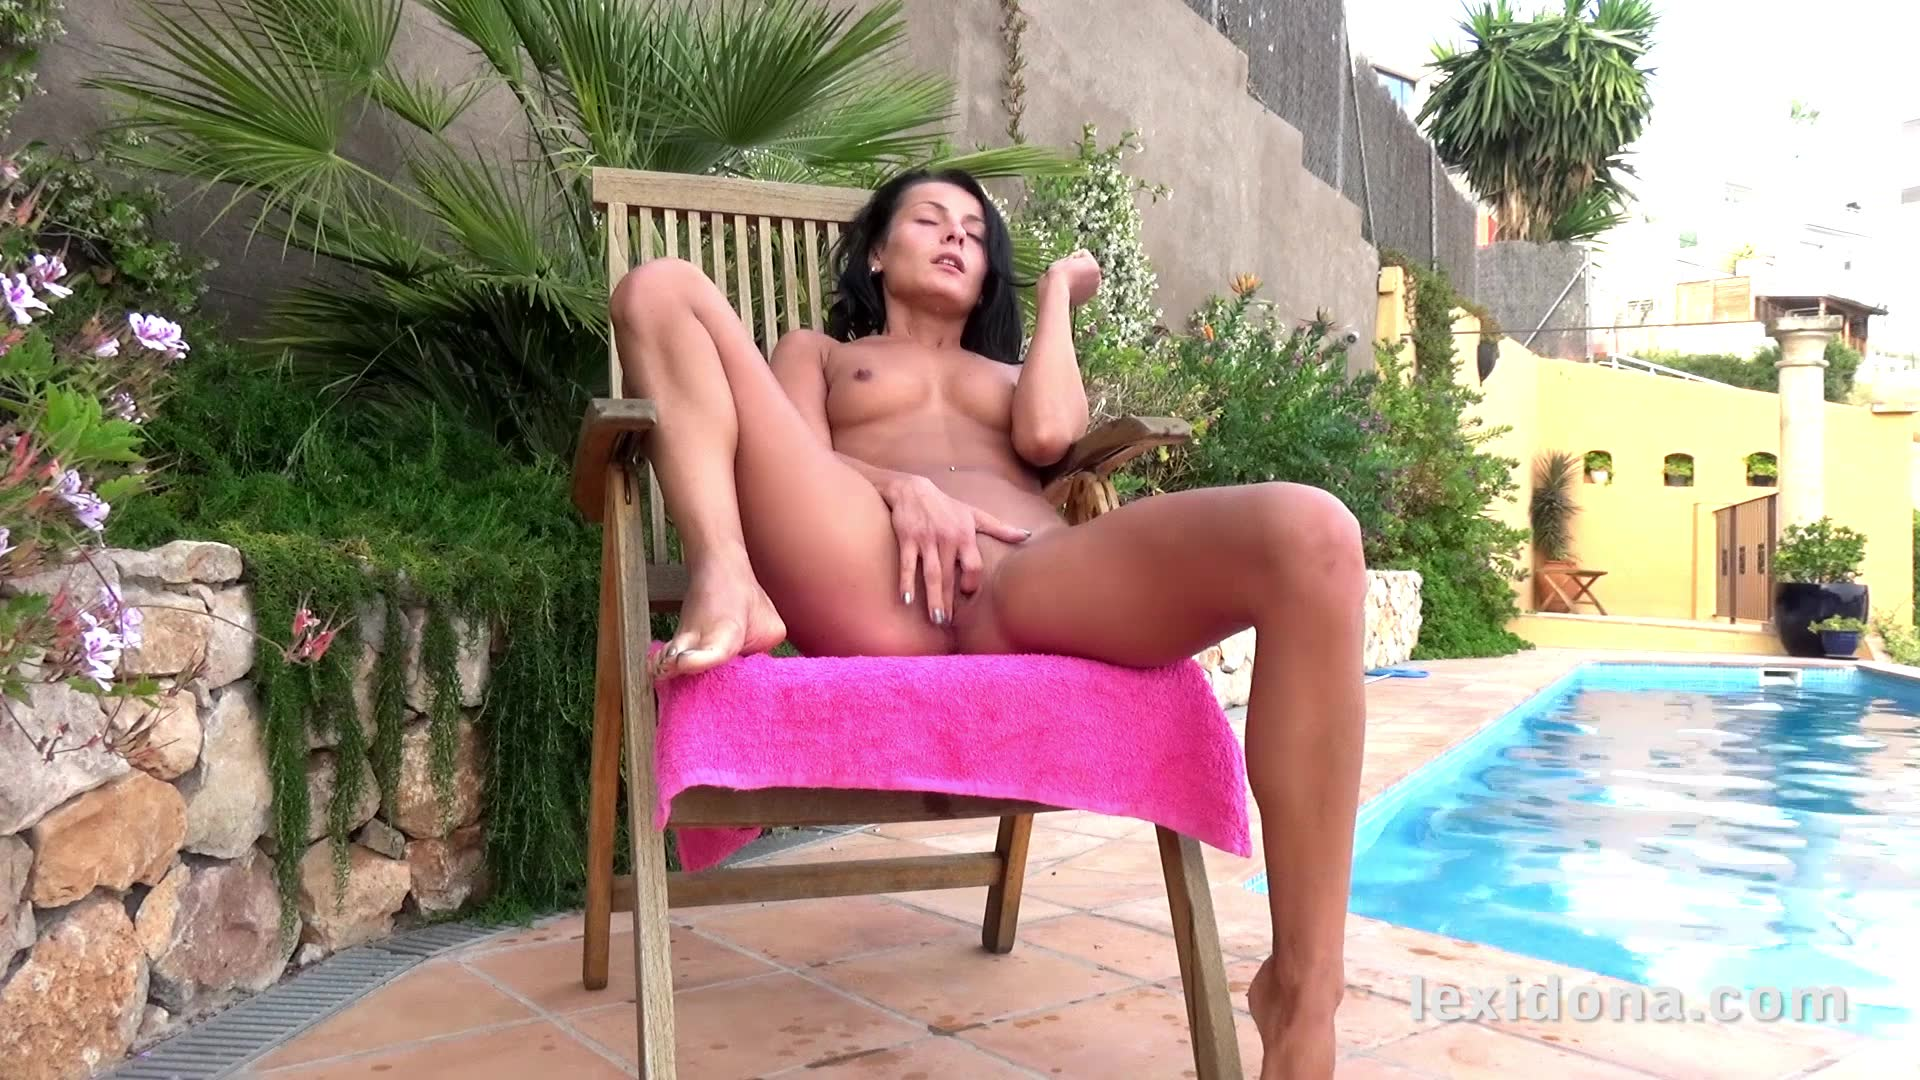 Lexi Dona rubs her pussy and fingers herself